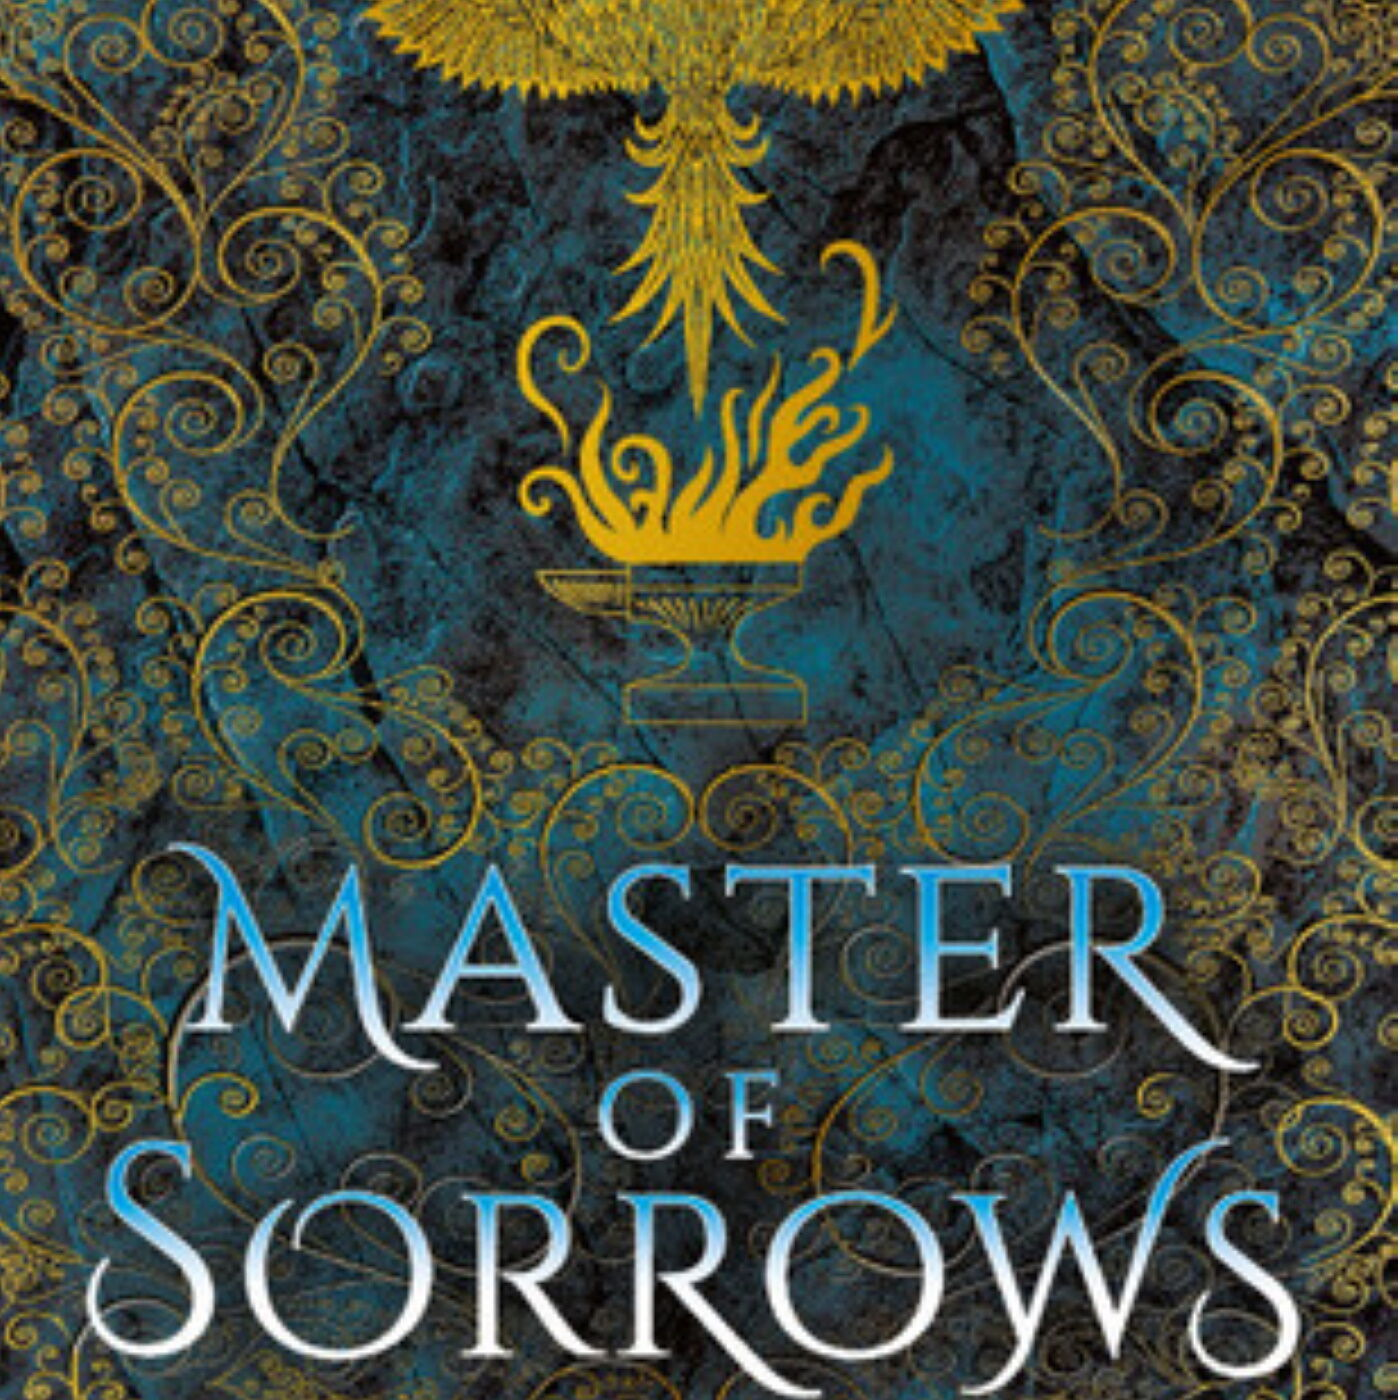 Book-Space! #12. Master of Sorrows by Justin Call